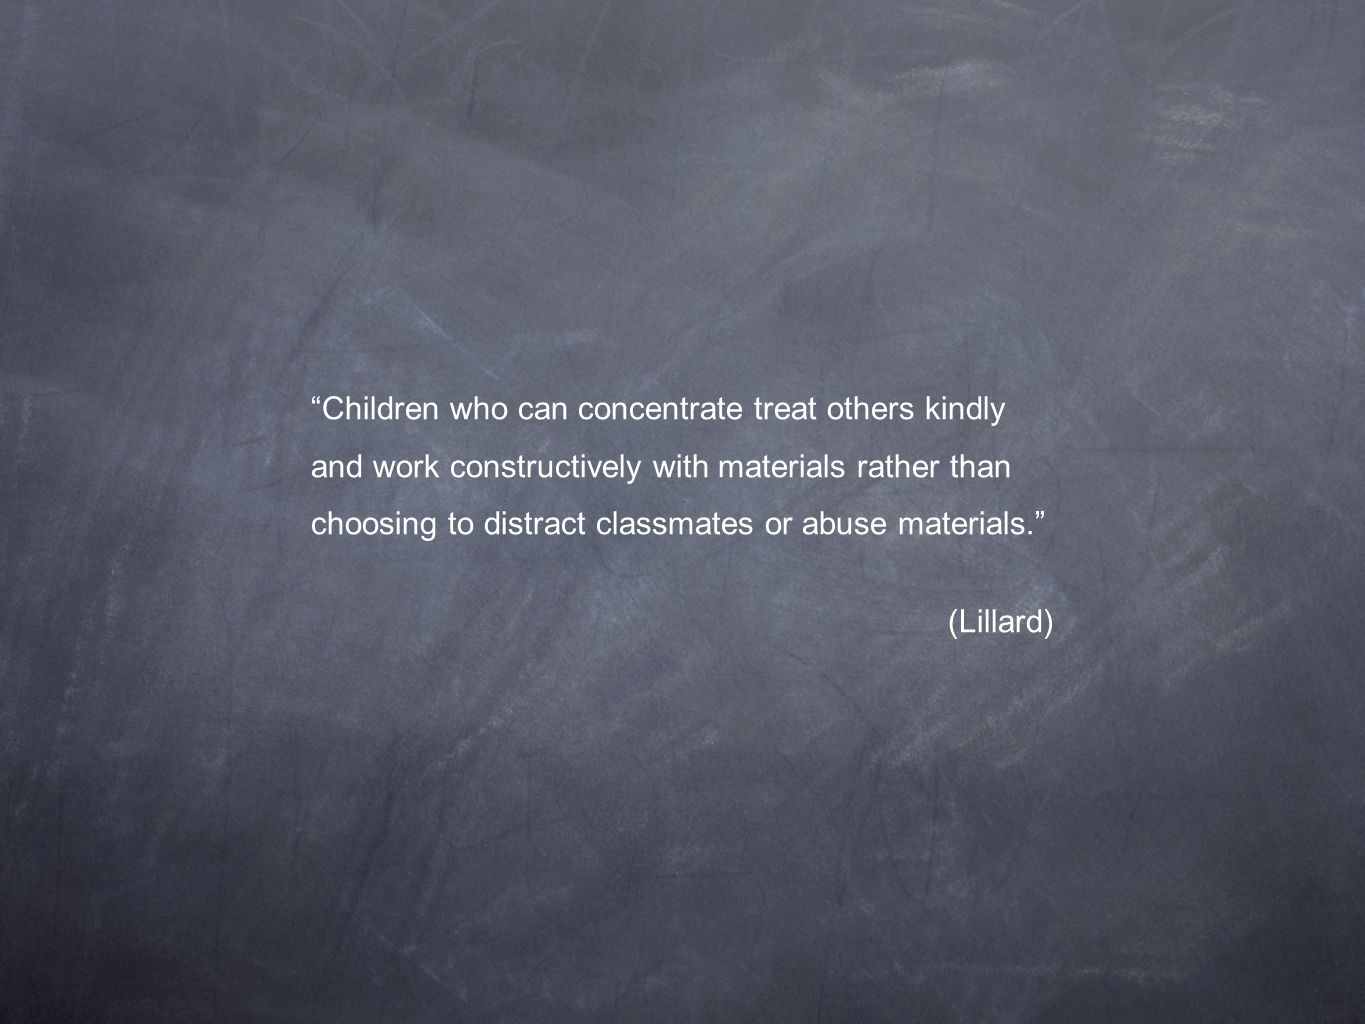 Children who can concentrate treat others kindly and work constructively with materials rather than choosing to distract classmates or abuse materials.